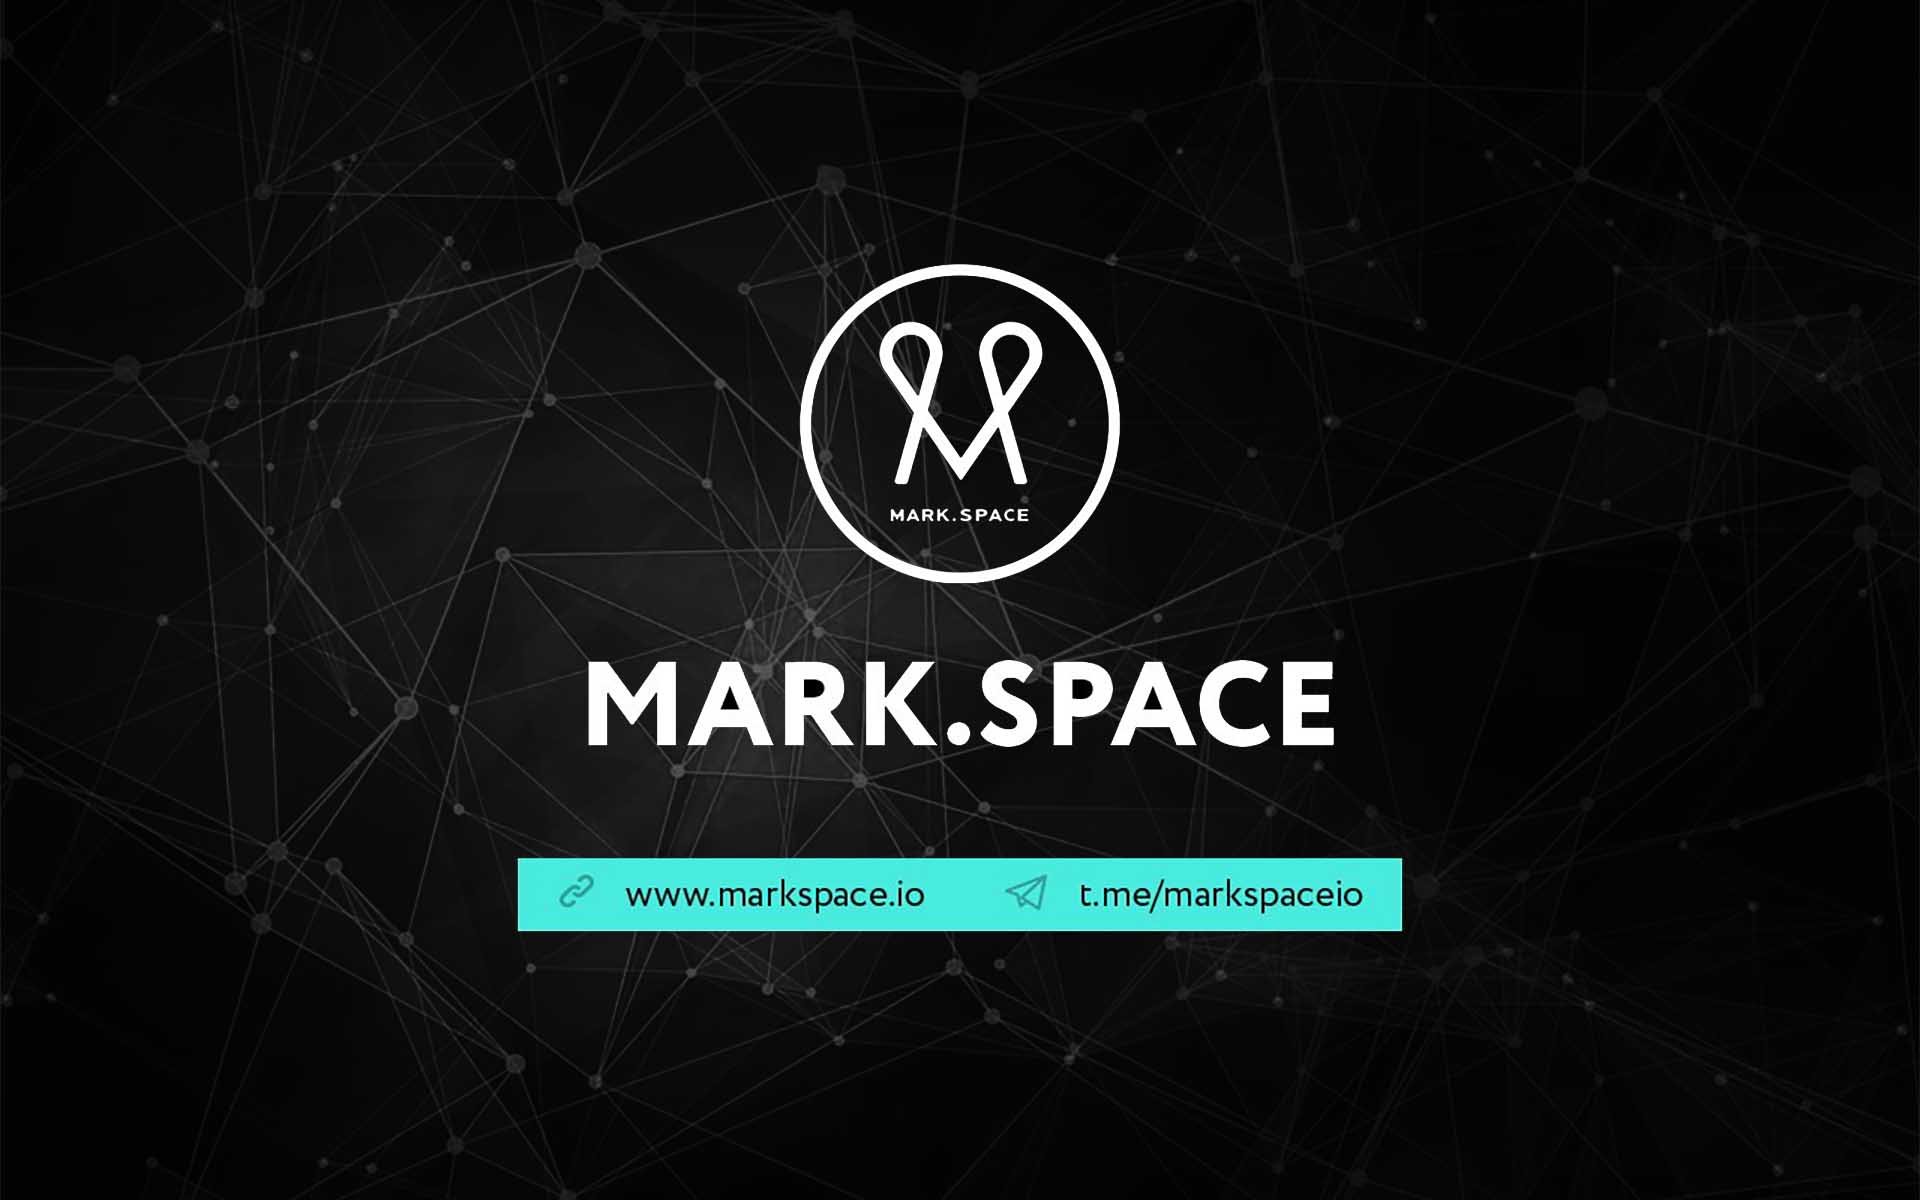 MARK.SPACE Raises Hopes of a Lucrative Alliance between VR and E-Commerce through its Revolutionary Blockchain Powered Ecosystem